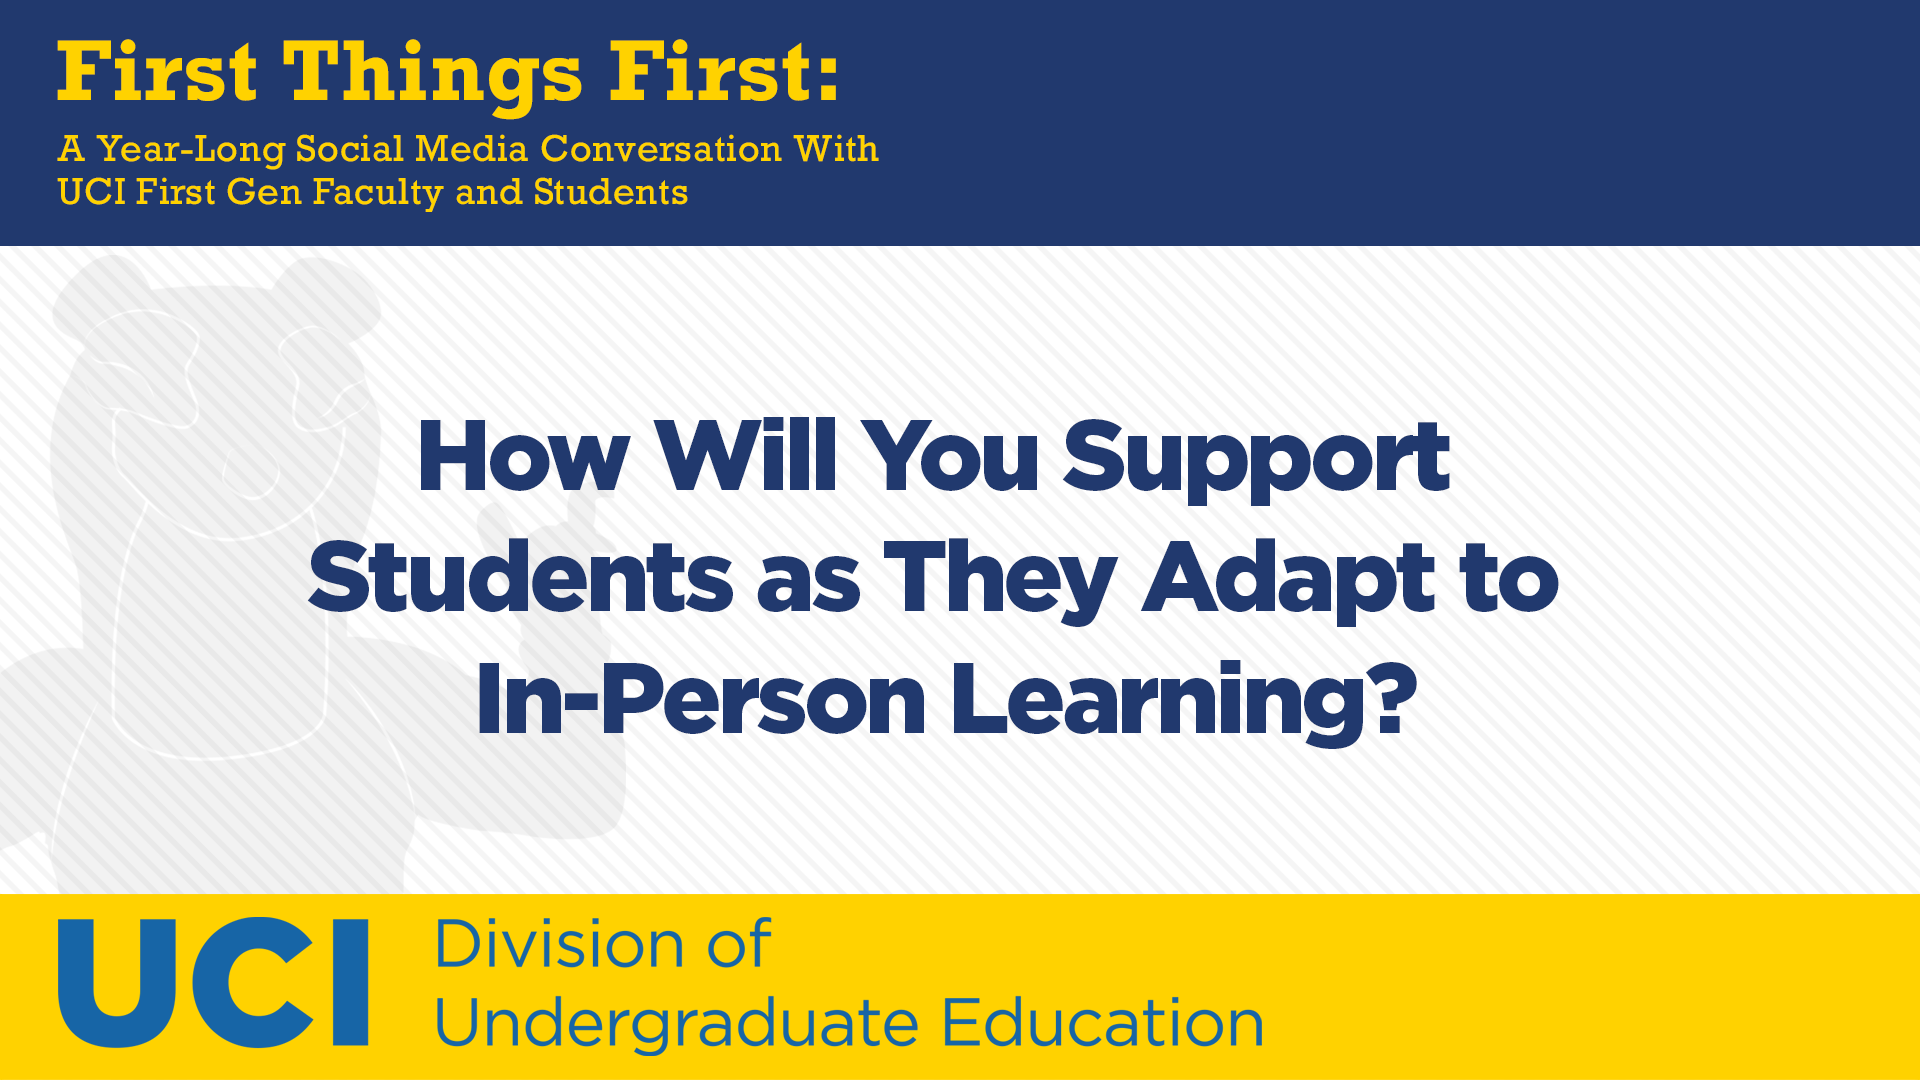 How Will You Support Students as They Adapt to In-Person Learning?